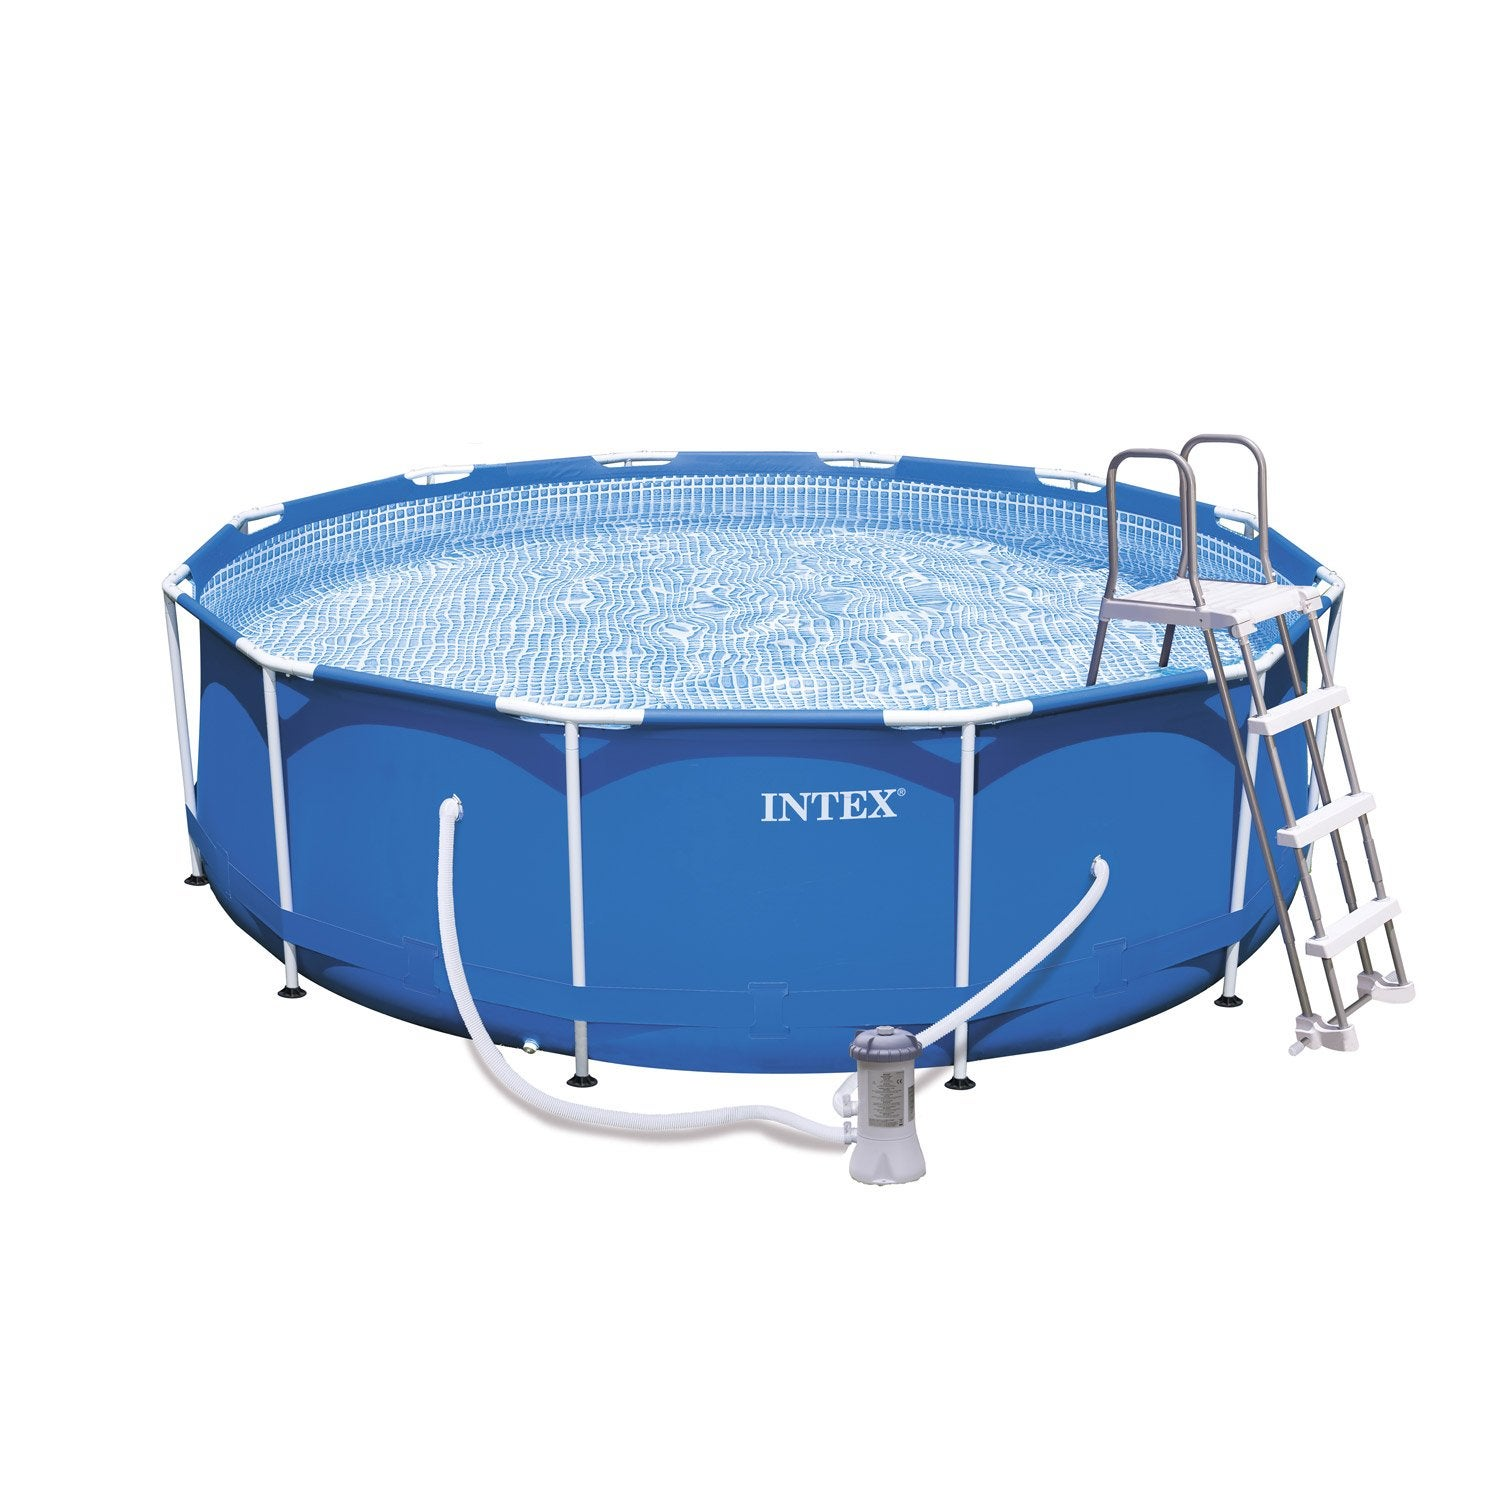 piscine hors sol autoportante tubulaire m tal frame intex ForPiscine Intex 3 66 X 0 99